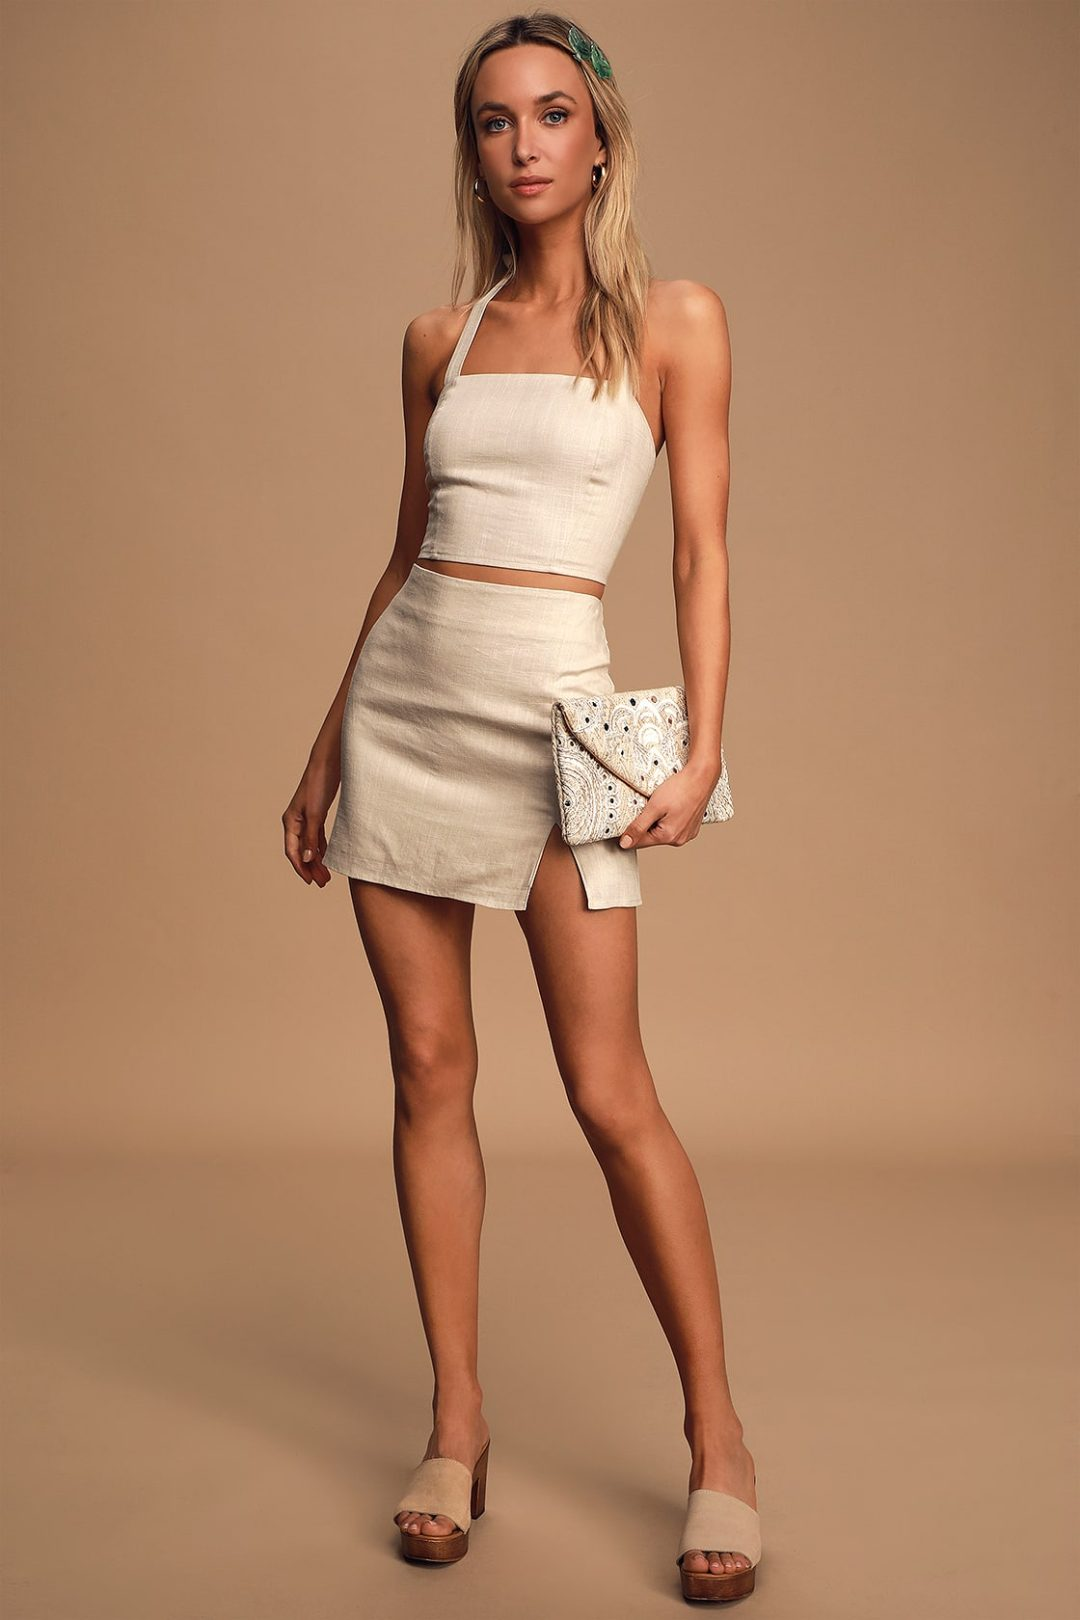 Neutral co-ord set perfect for summer